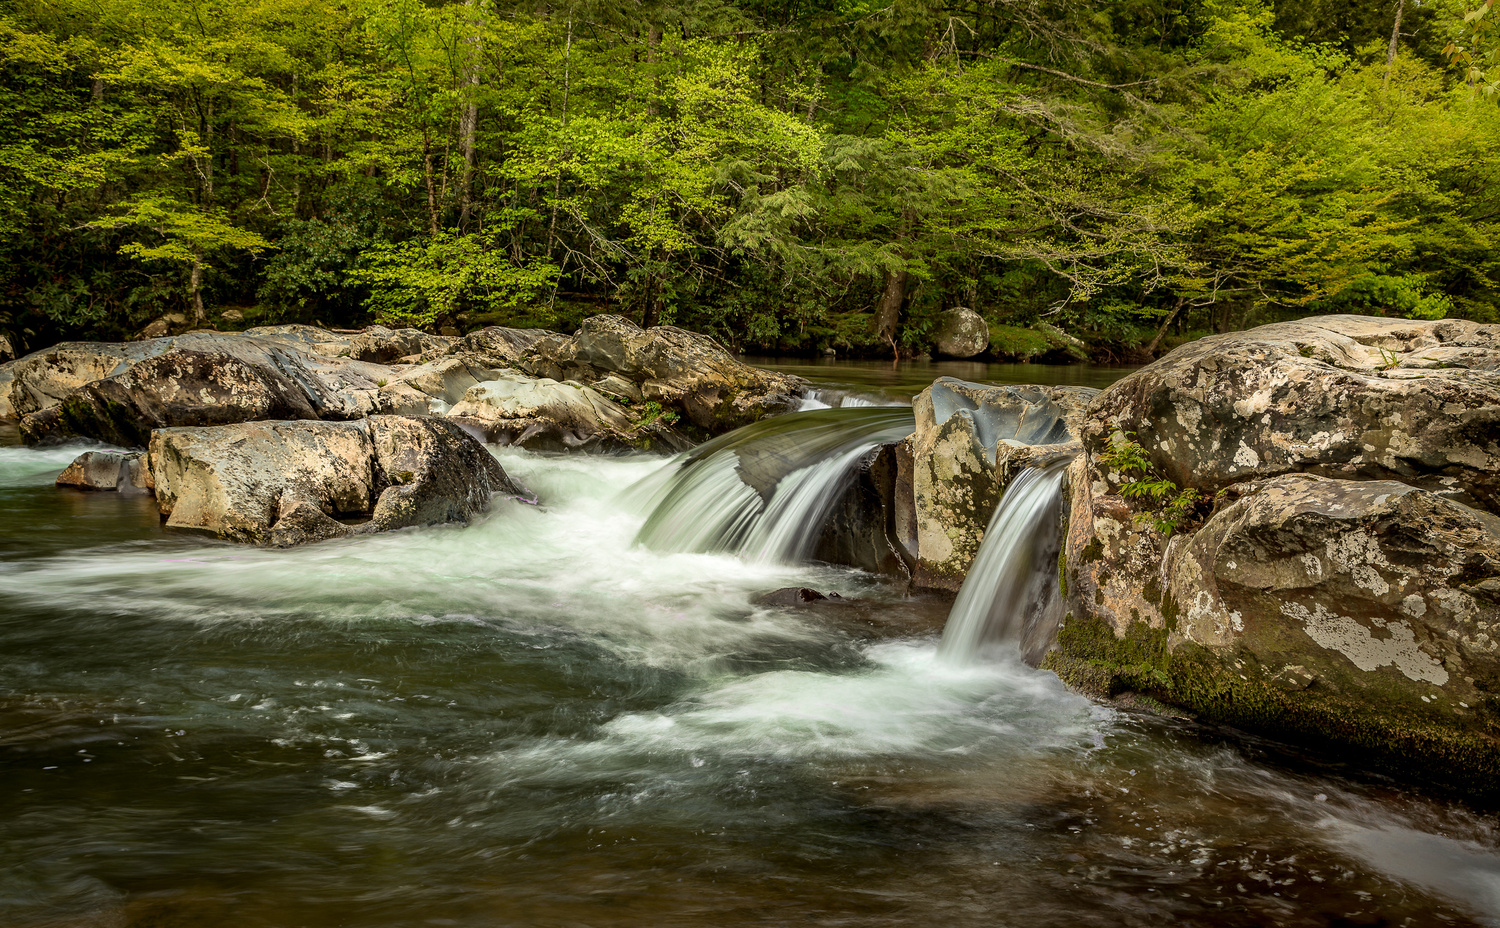 Small Falls, The Great Smokies by Ed Sanford